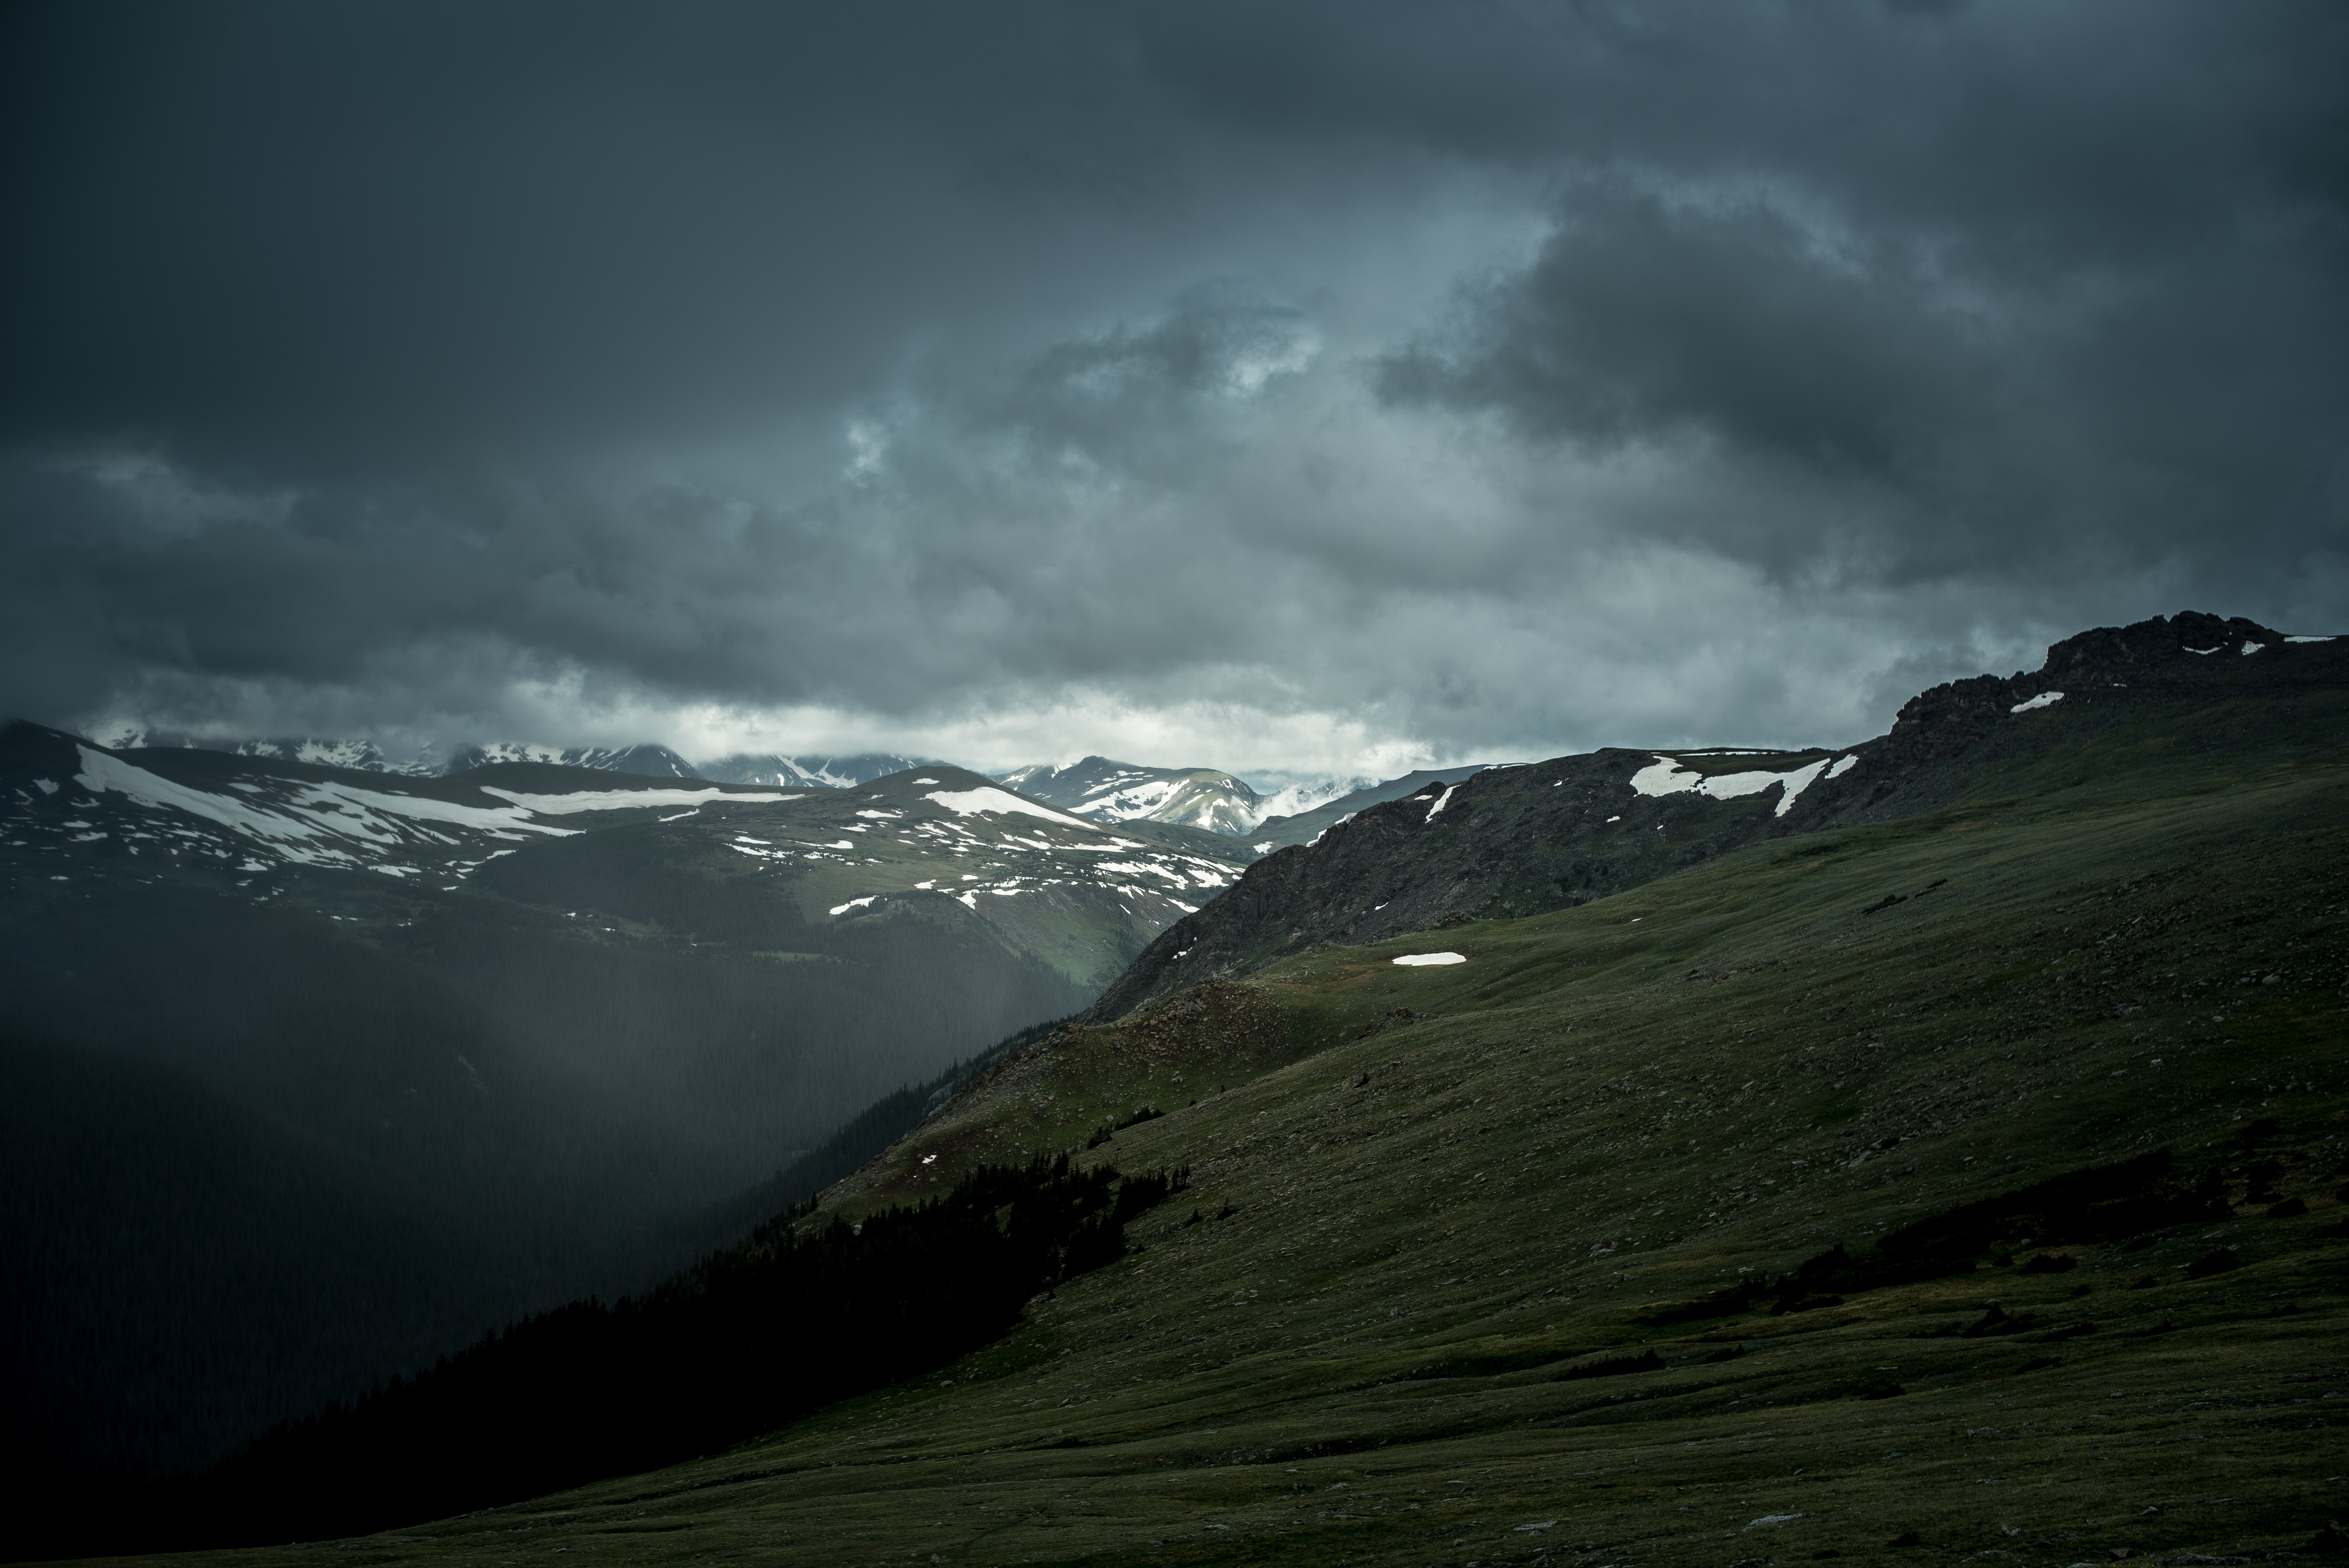 Mountains covered by grass and snow with deep hanging clouds in the sky